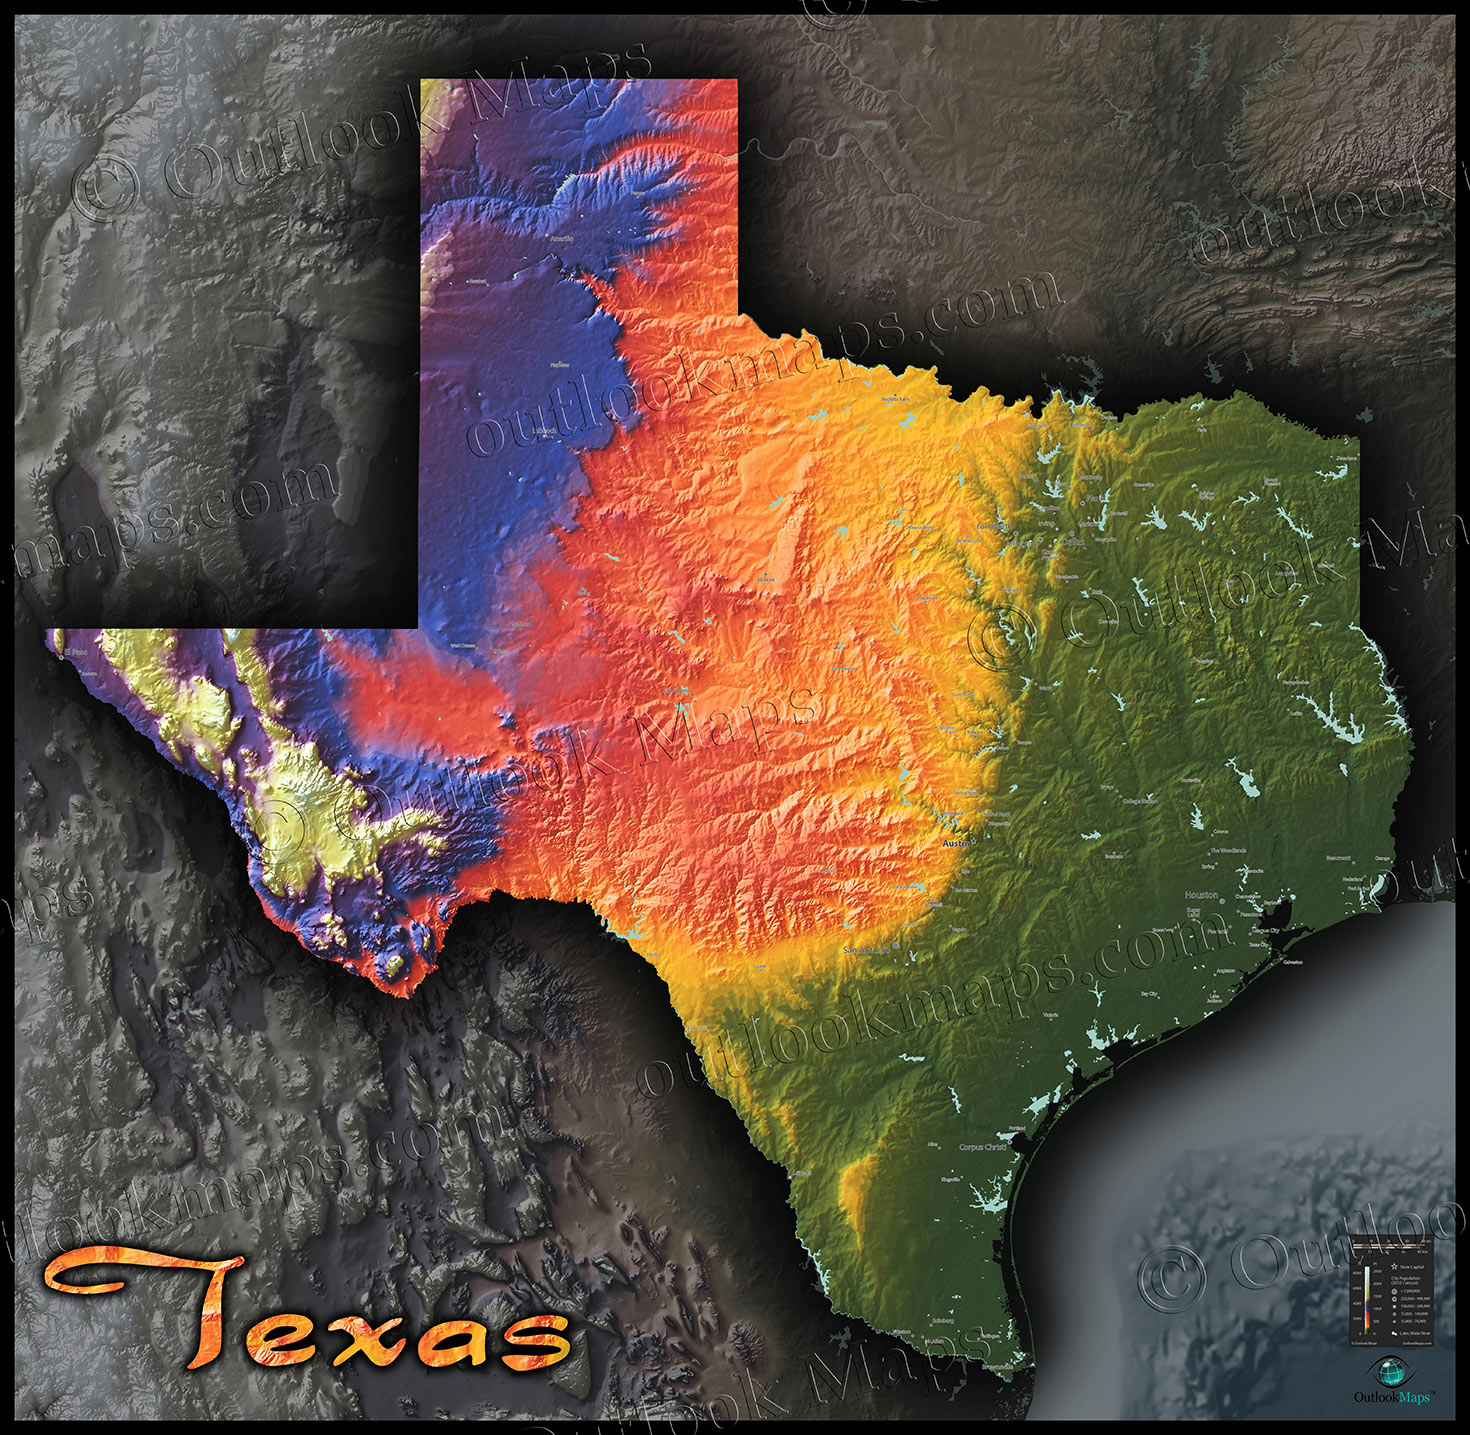 Physical Texas Map | State Topography In Colorful 3D Style - Texas Elevation Map